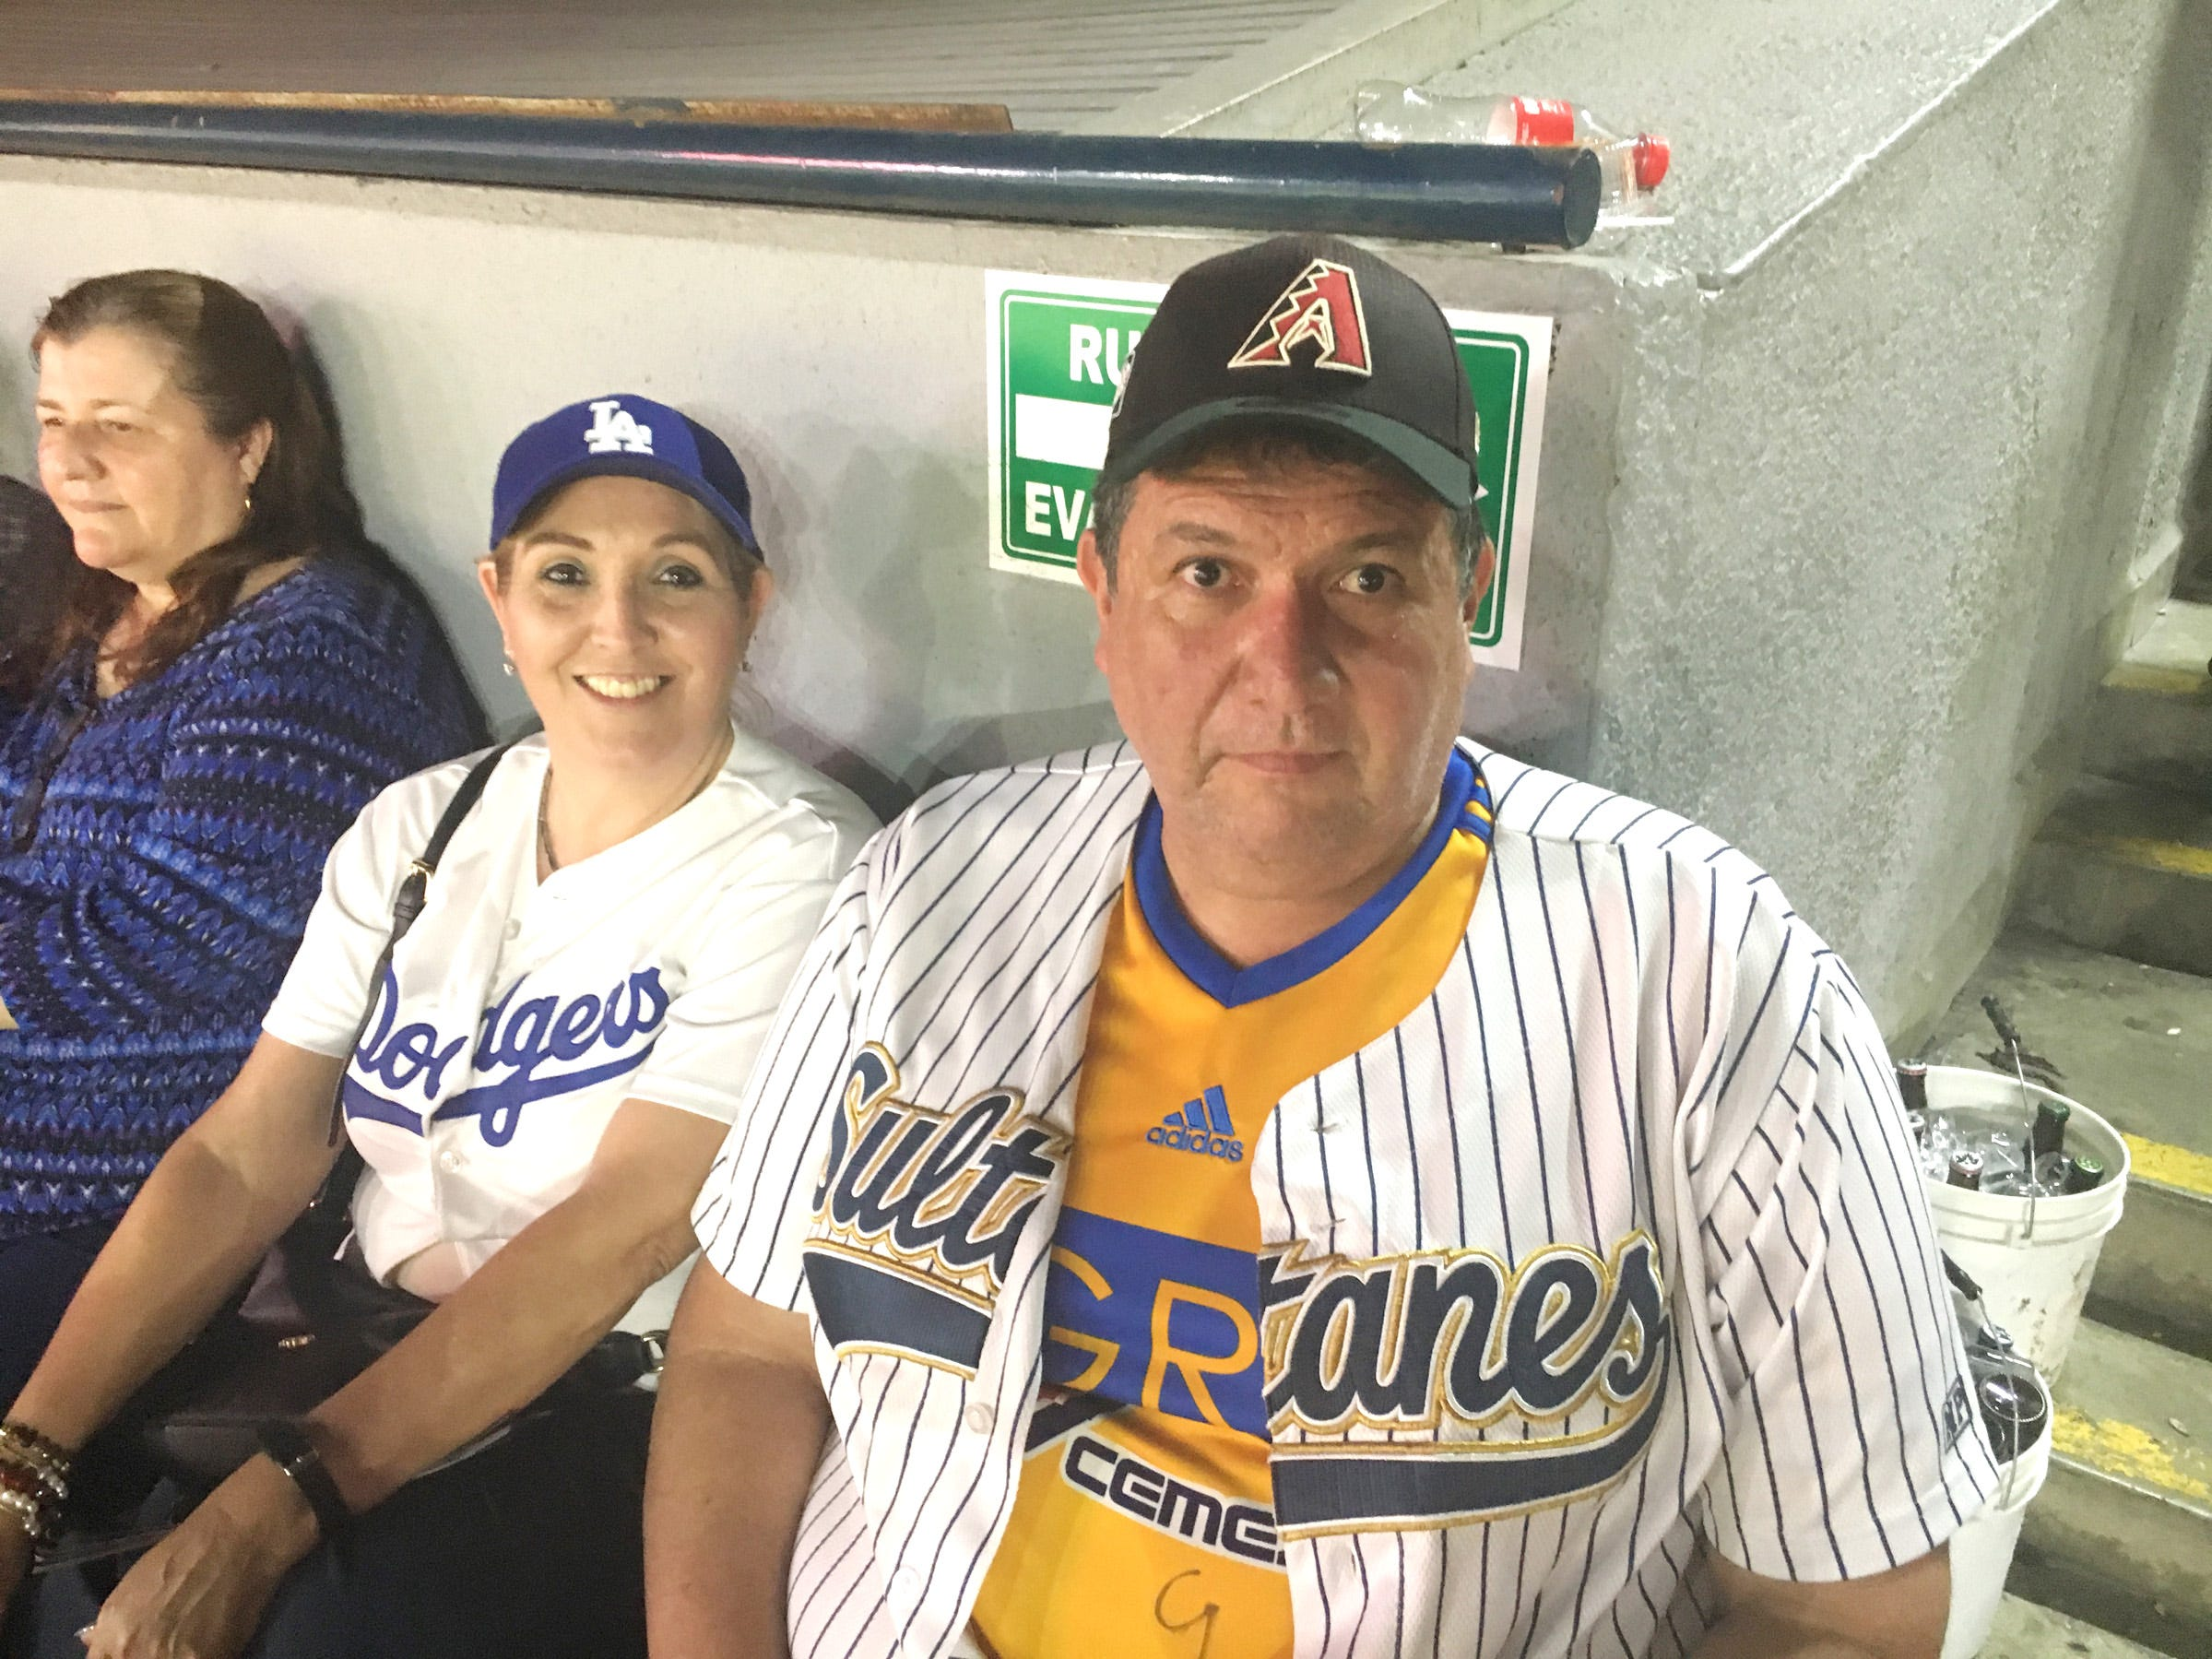 These two baseball fans wore jerseys and caps showing their support for the Arizona Diamondbacks, the Los Angeles Dodgers and the Sultanes de Monterrey, Mexico.